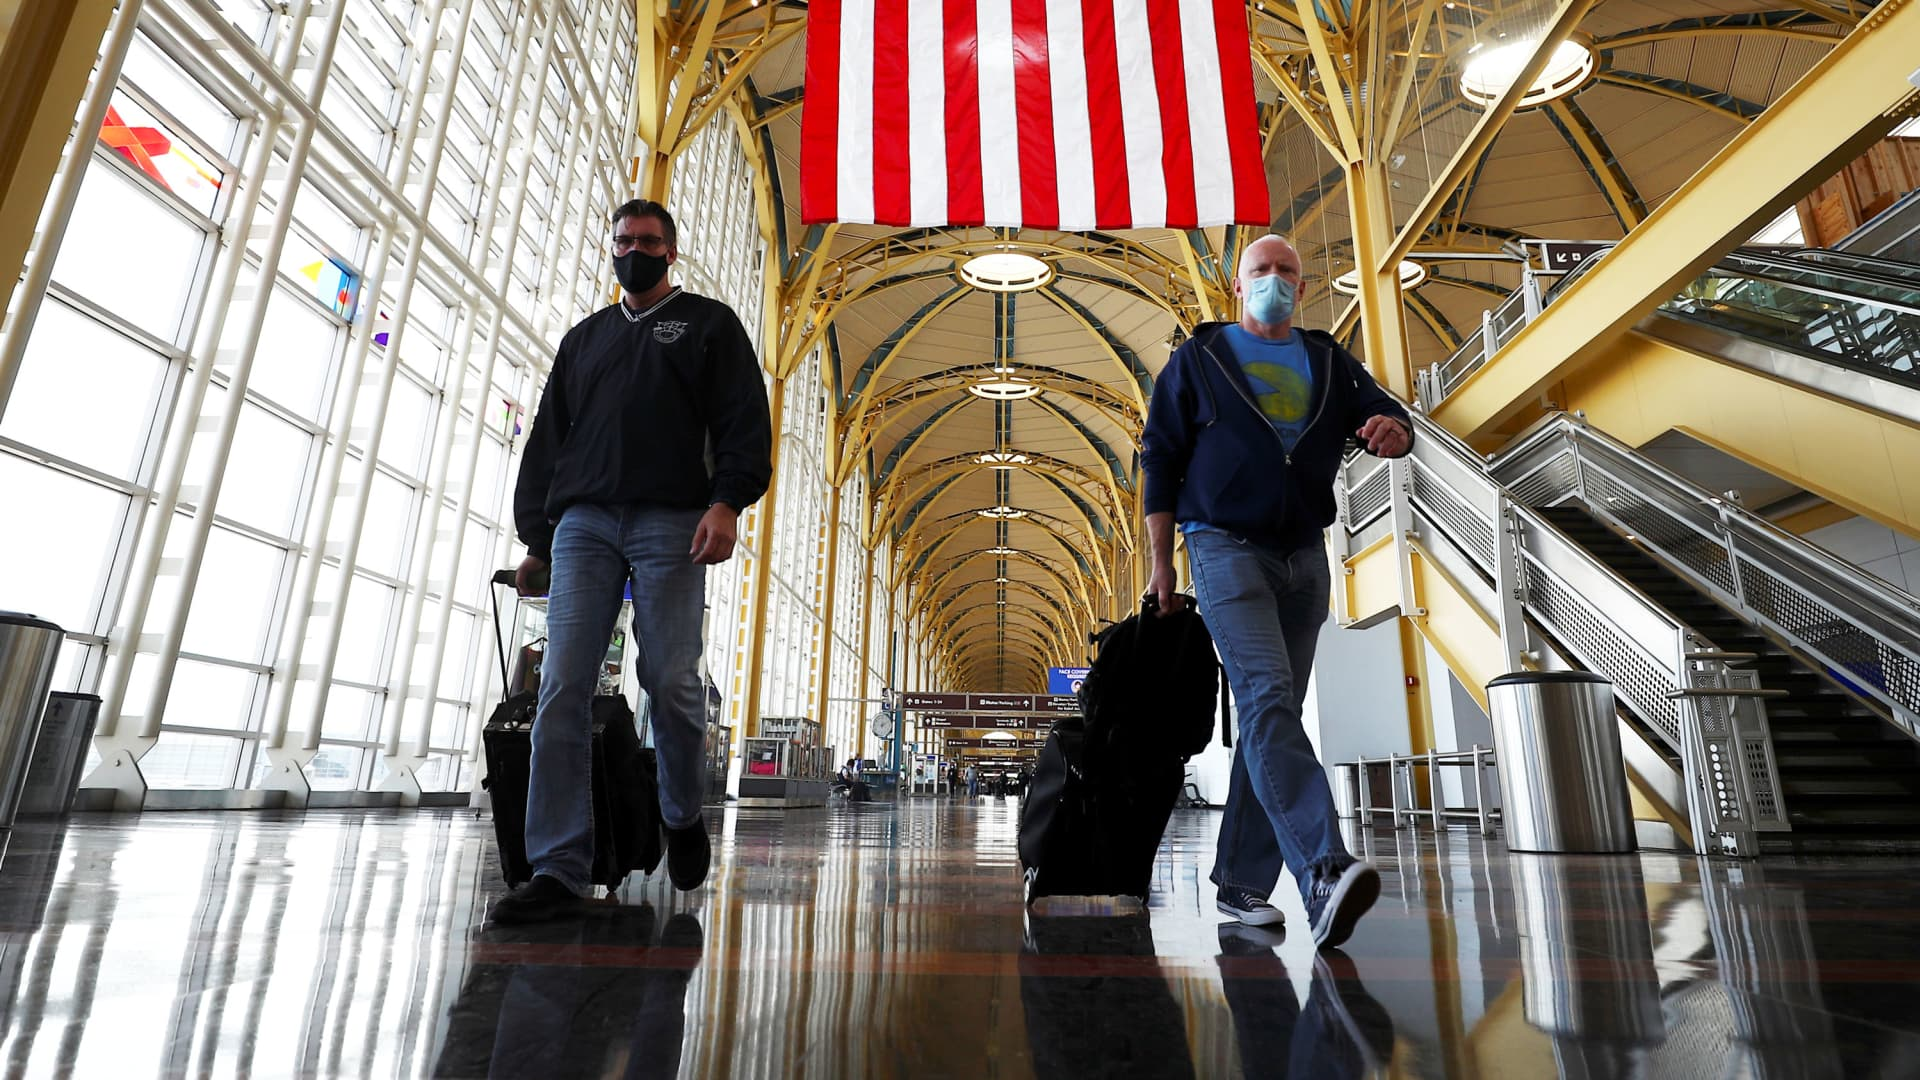 People walk at Reagan National Airport in Arlington, Virginia.